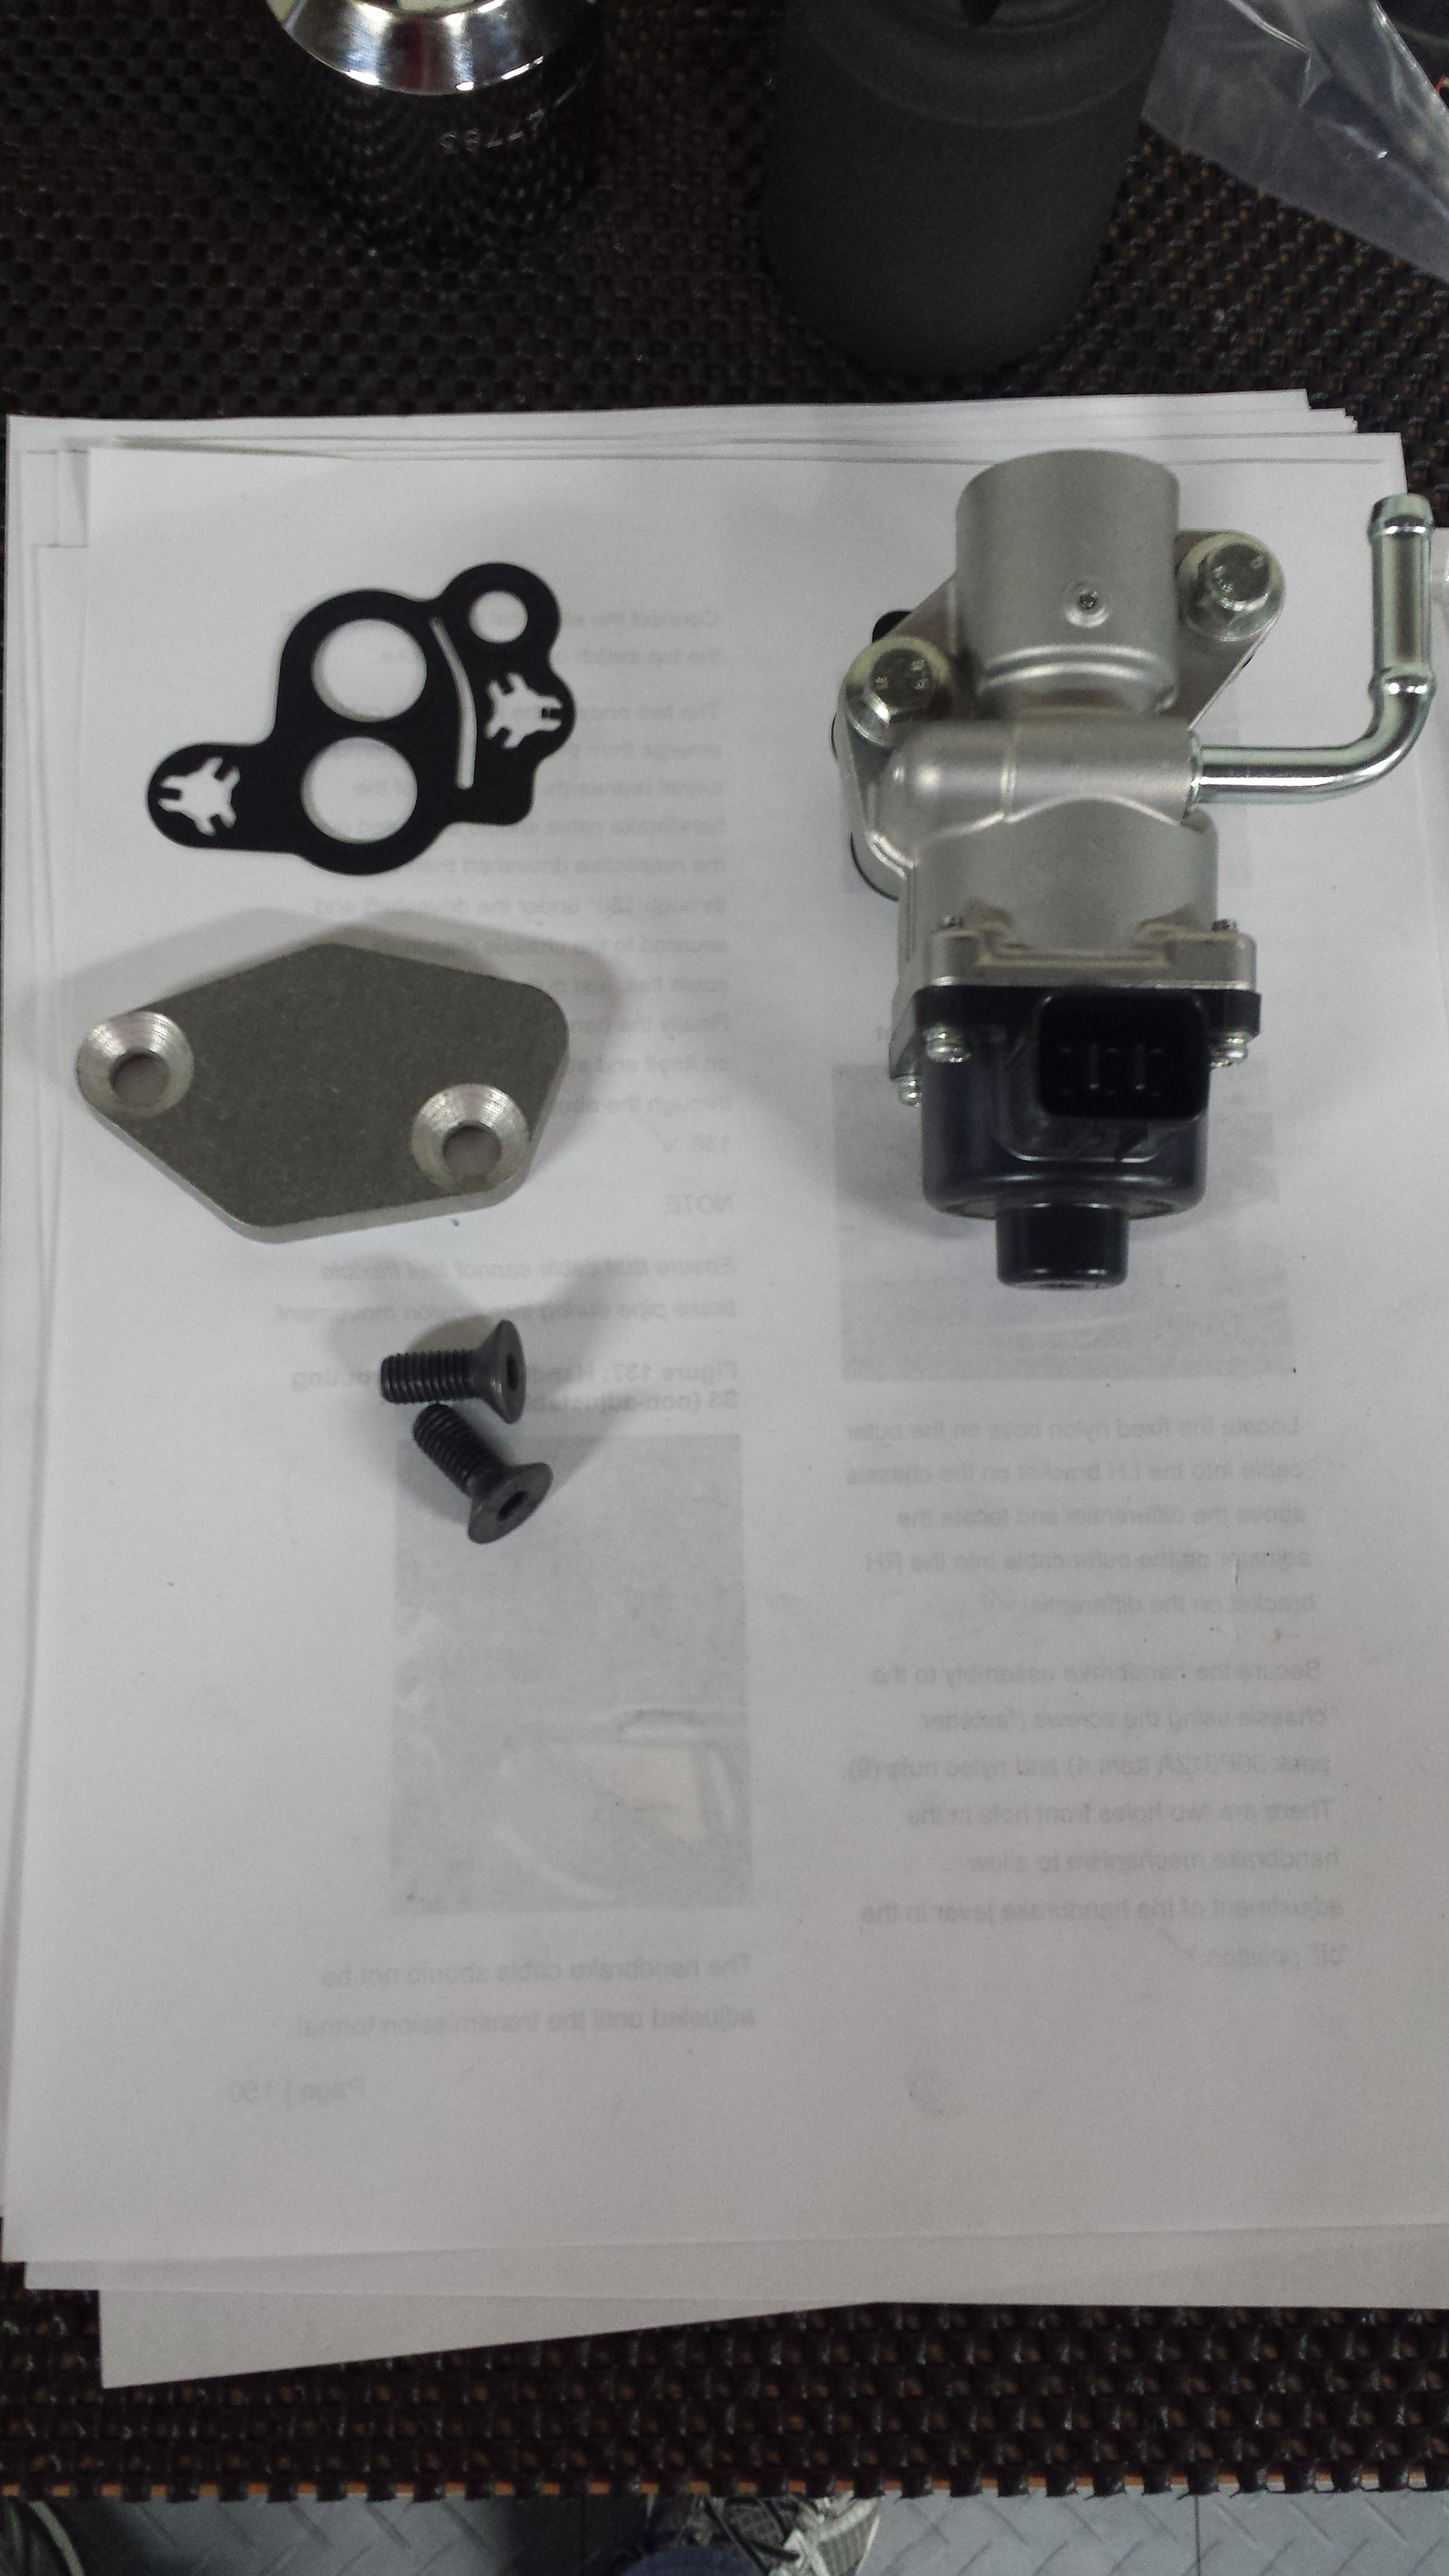 EGR valve off, blanking plate, gasket, and bolts